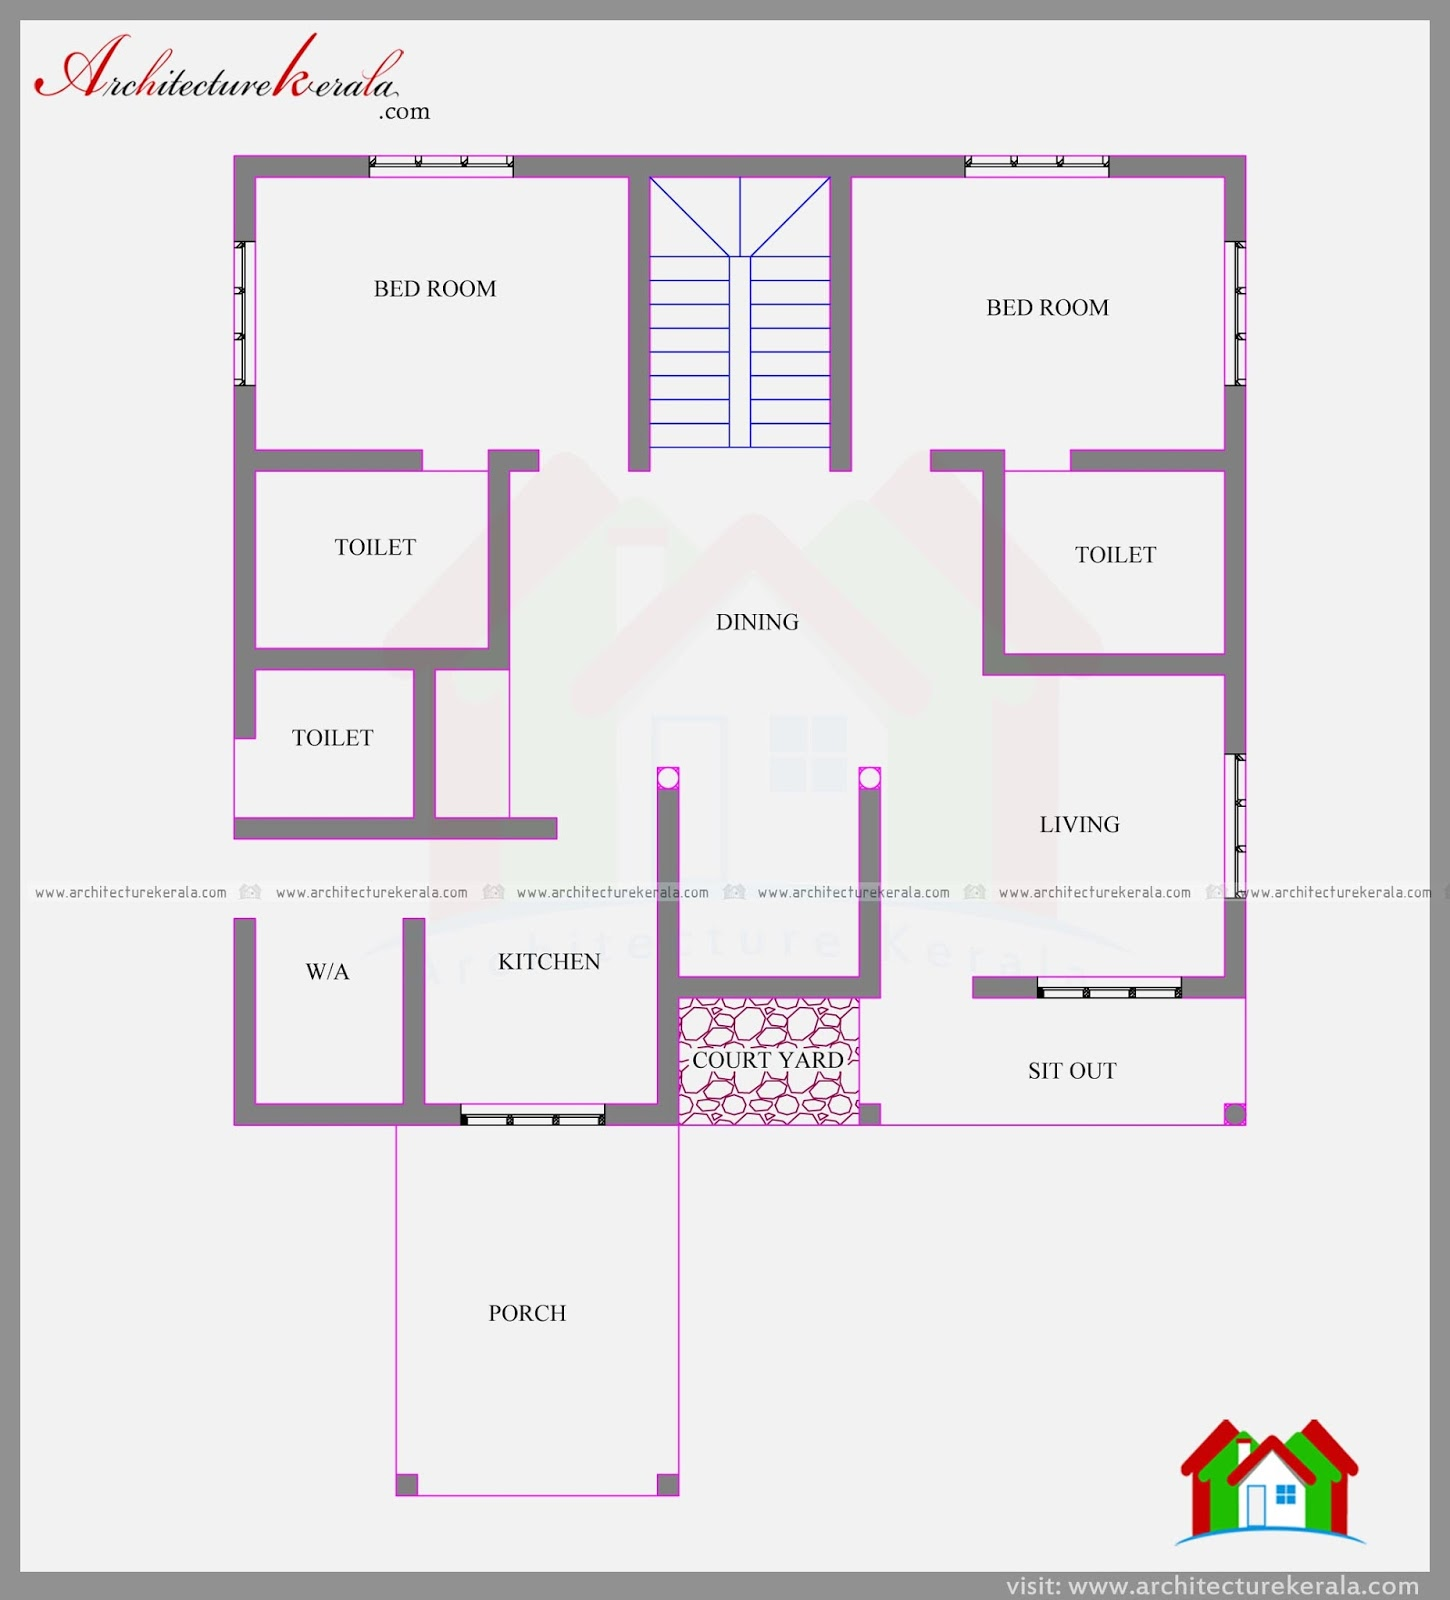 Bhk Plan Elevation Section : Bhk sq ft design joy studio gallery best